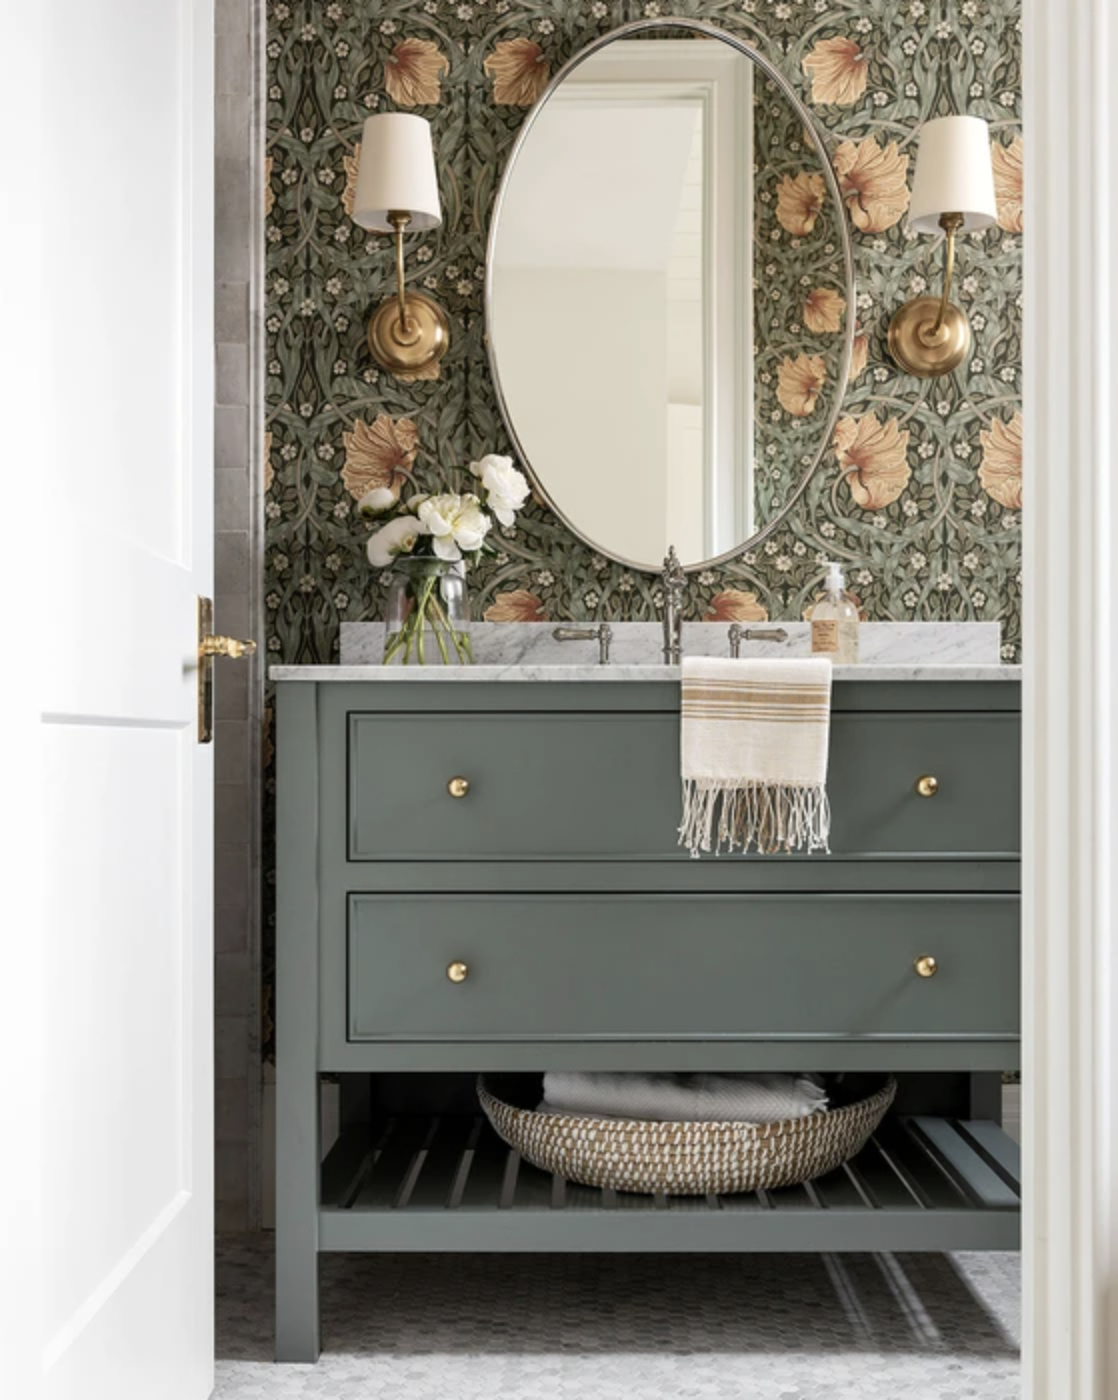 10 Things, 5/24 | Bathroom vanity paint color inspiration